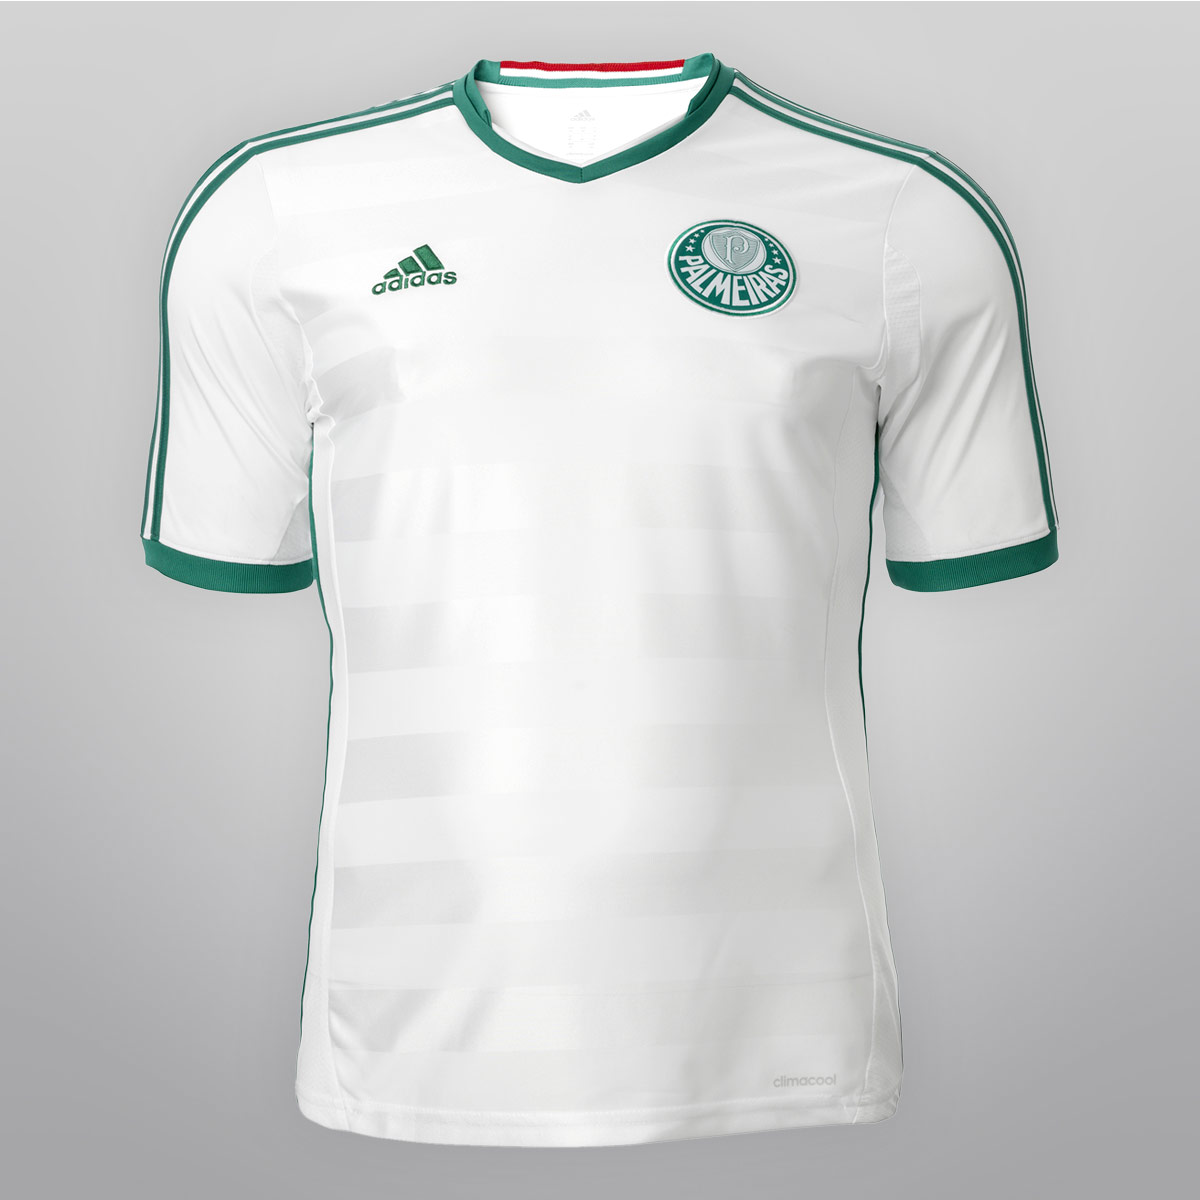 8b0d802f7cd http   4.bp.blogspot.com -FYOWNqLGT-g. Away  Same as the home kit ...